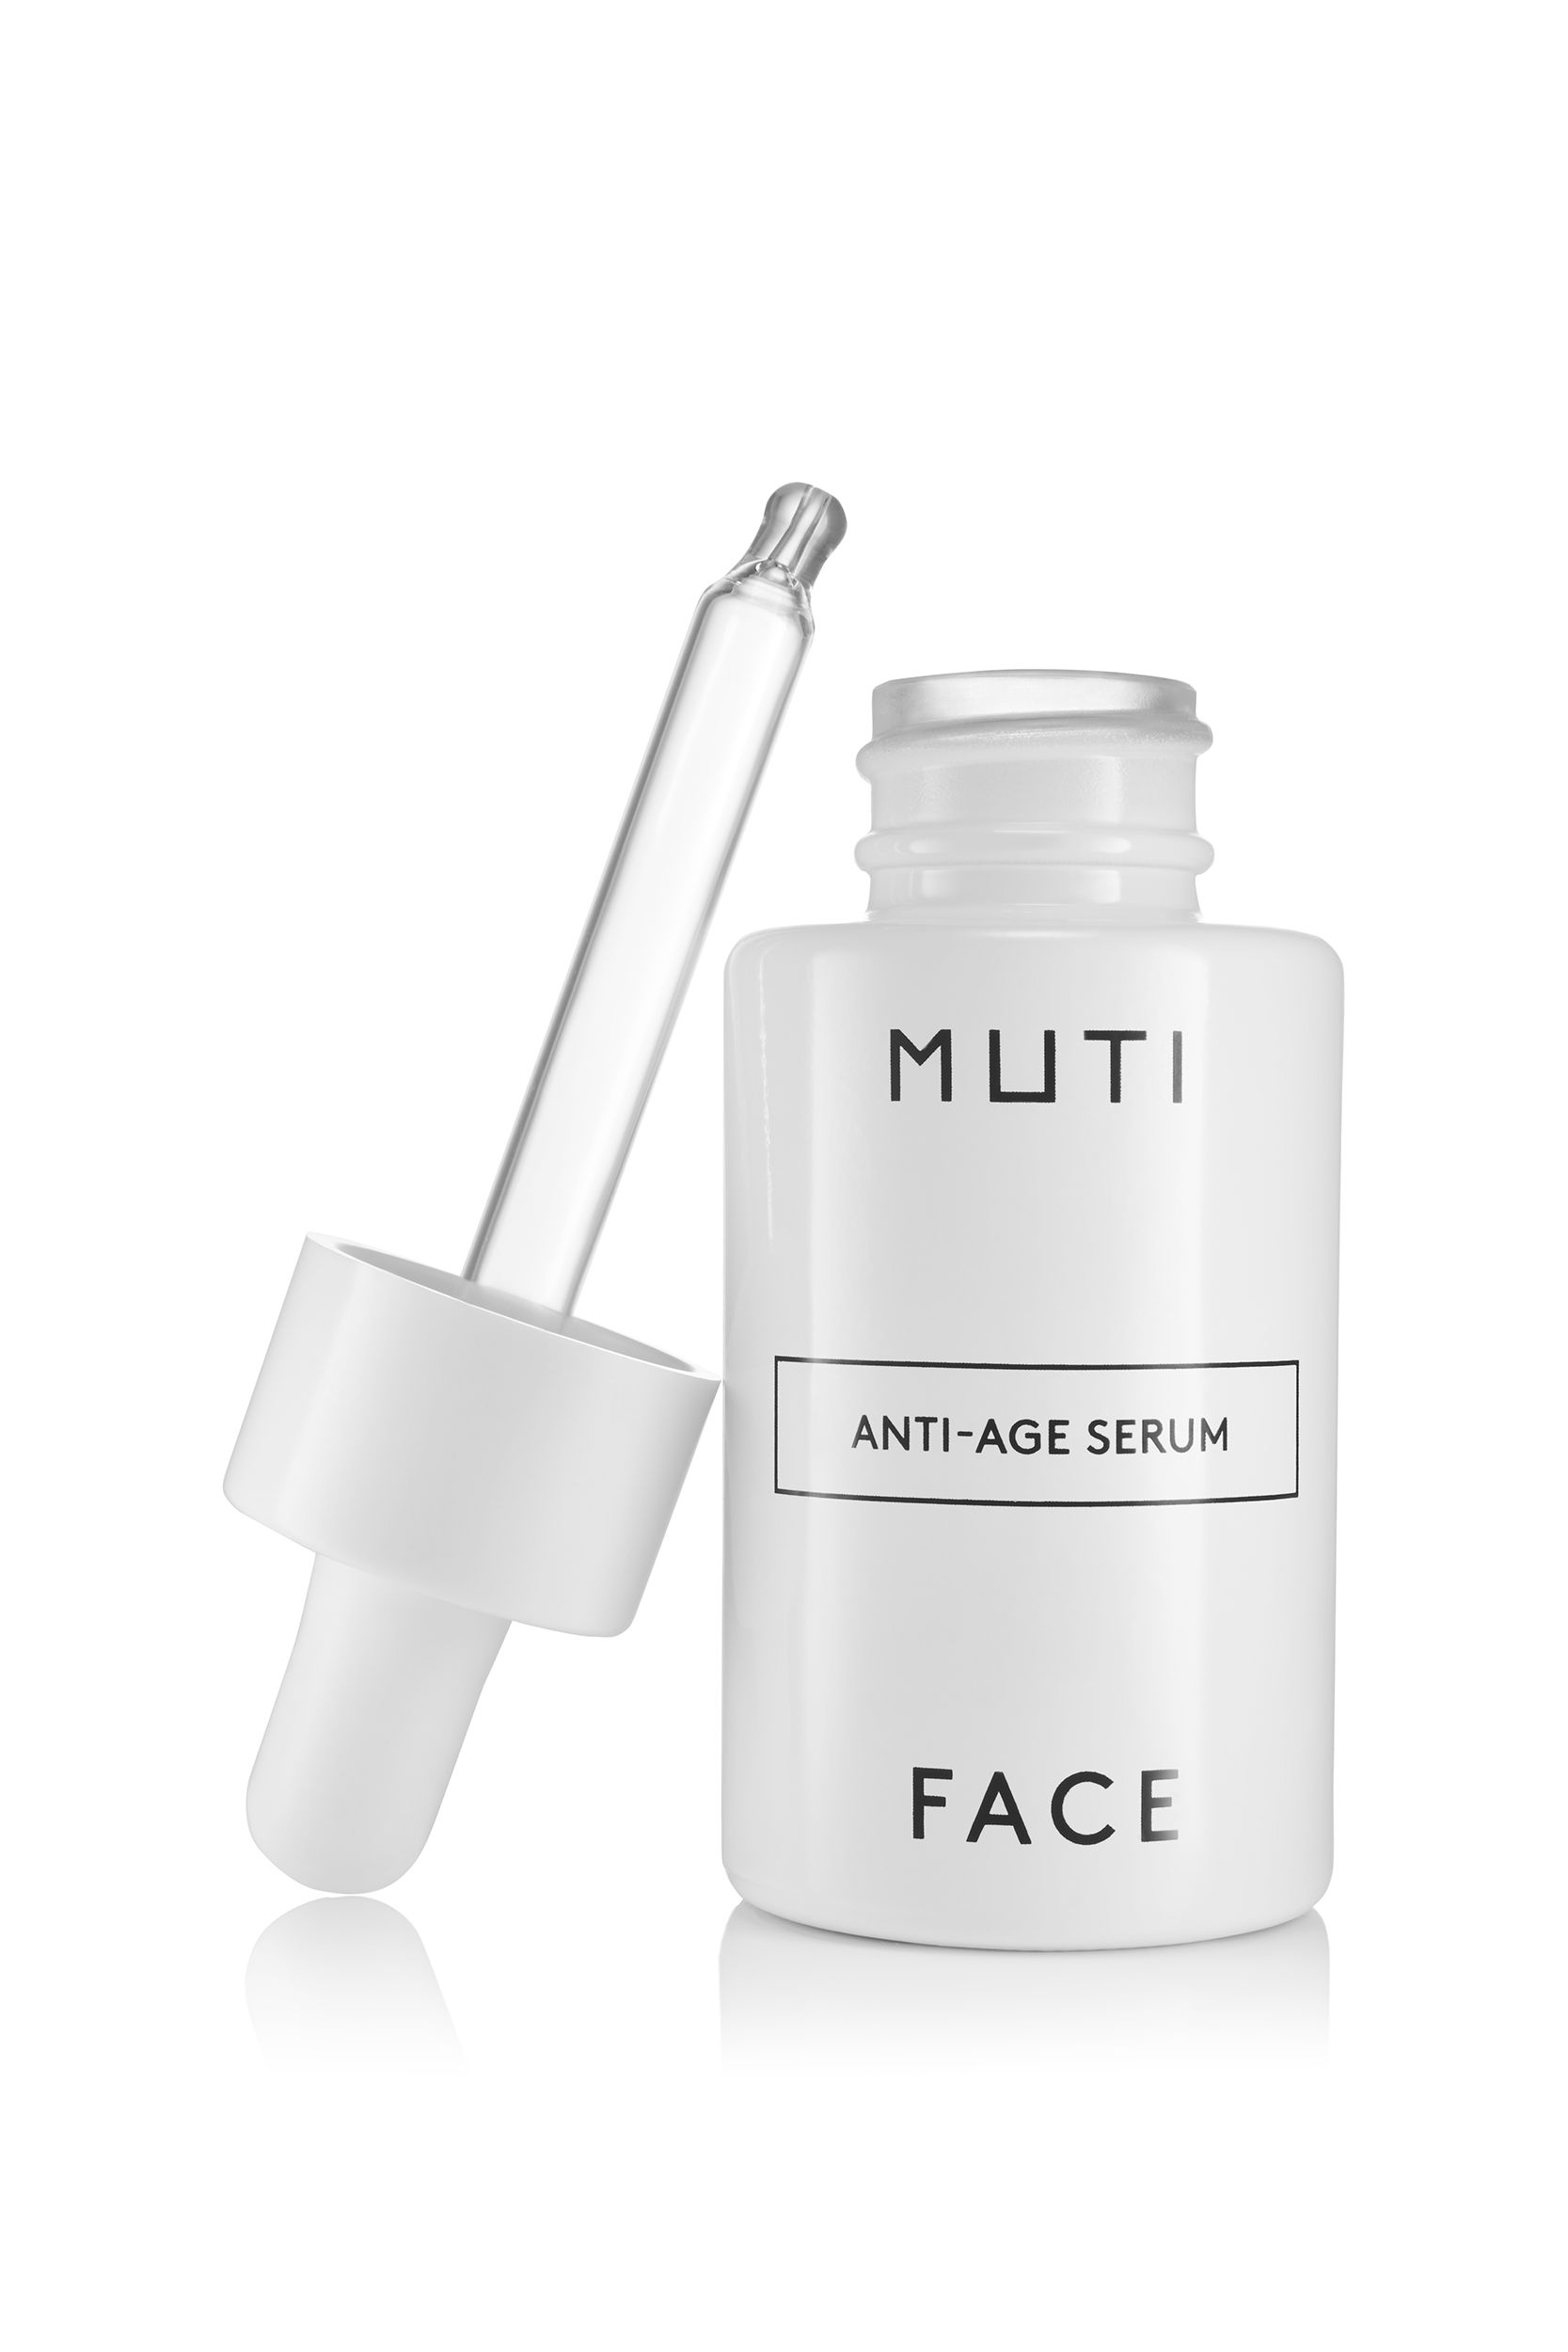 MUTI FACE_ Anti-Age Serum_offen